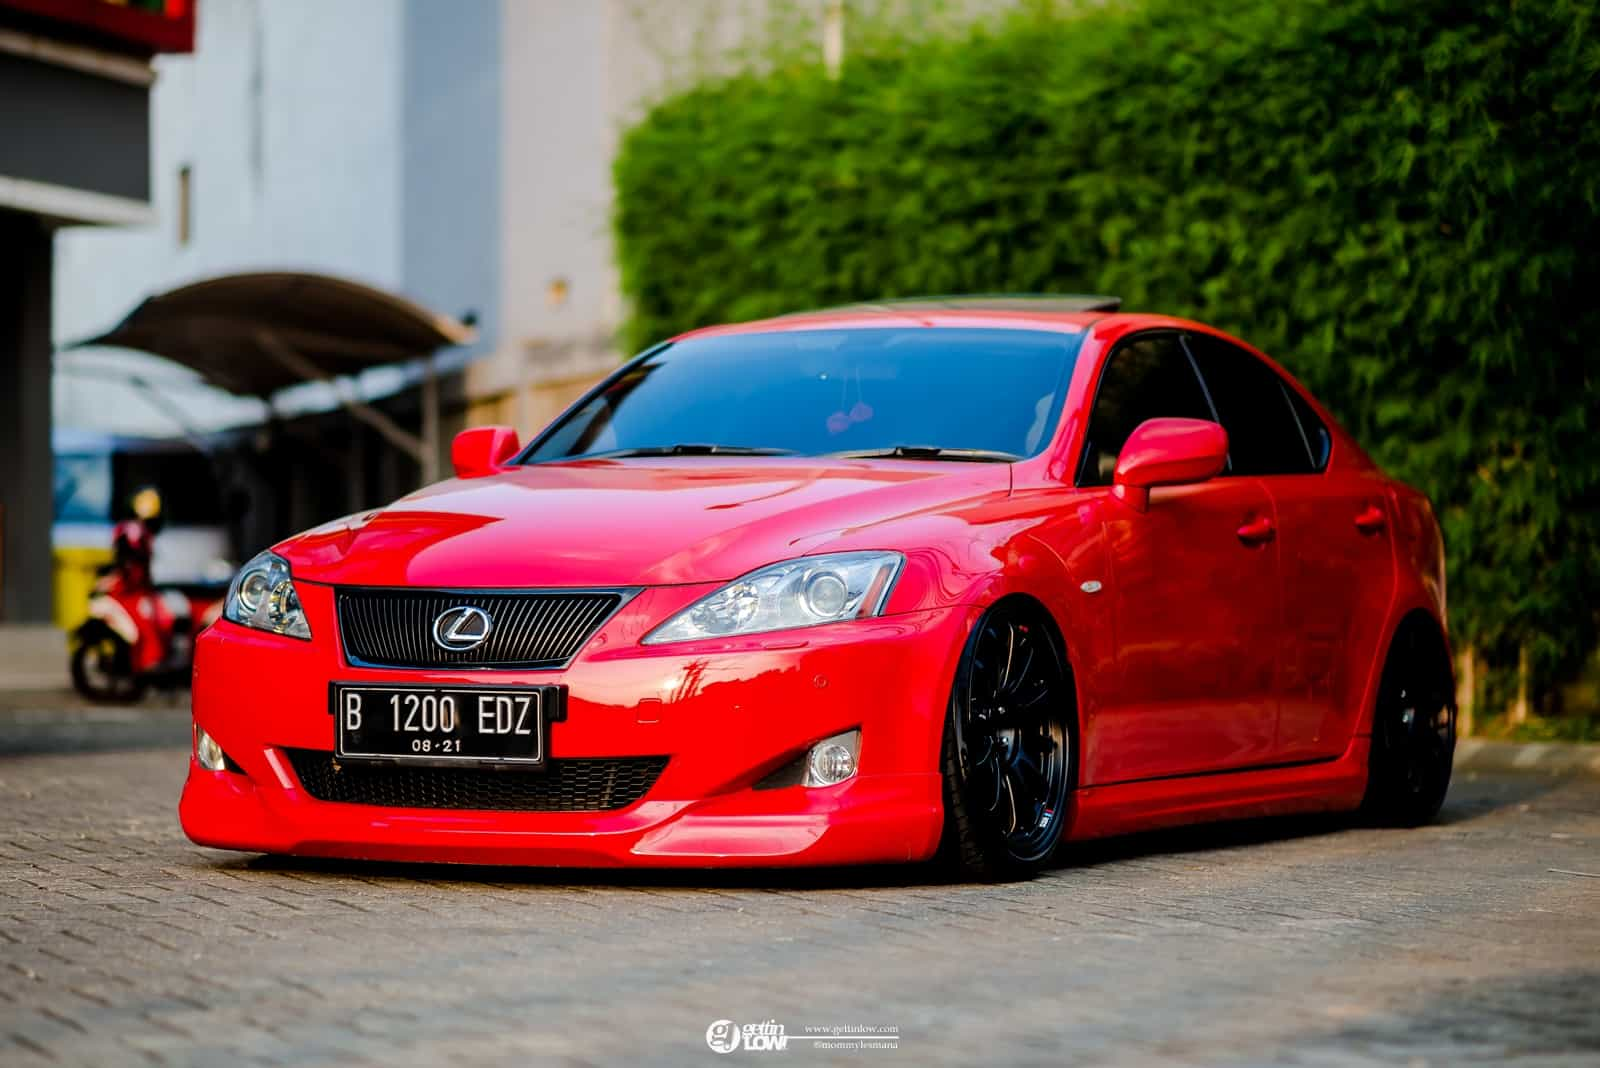 Heru's bagged 2008 LEXUS IS300 on SSR Type F